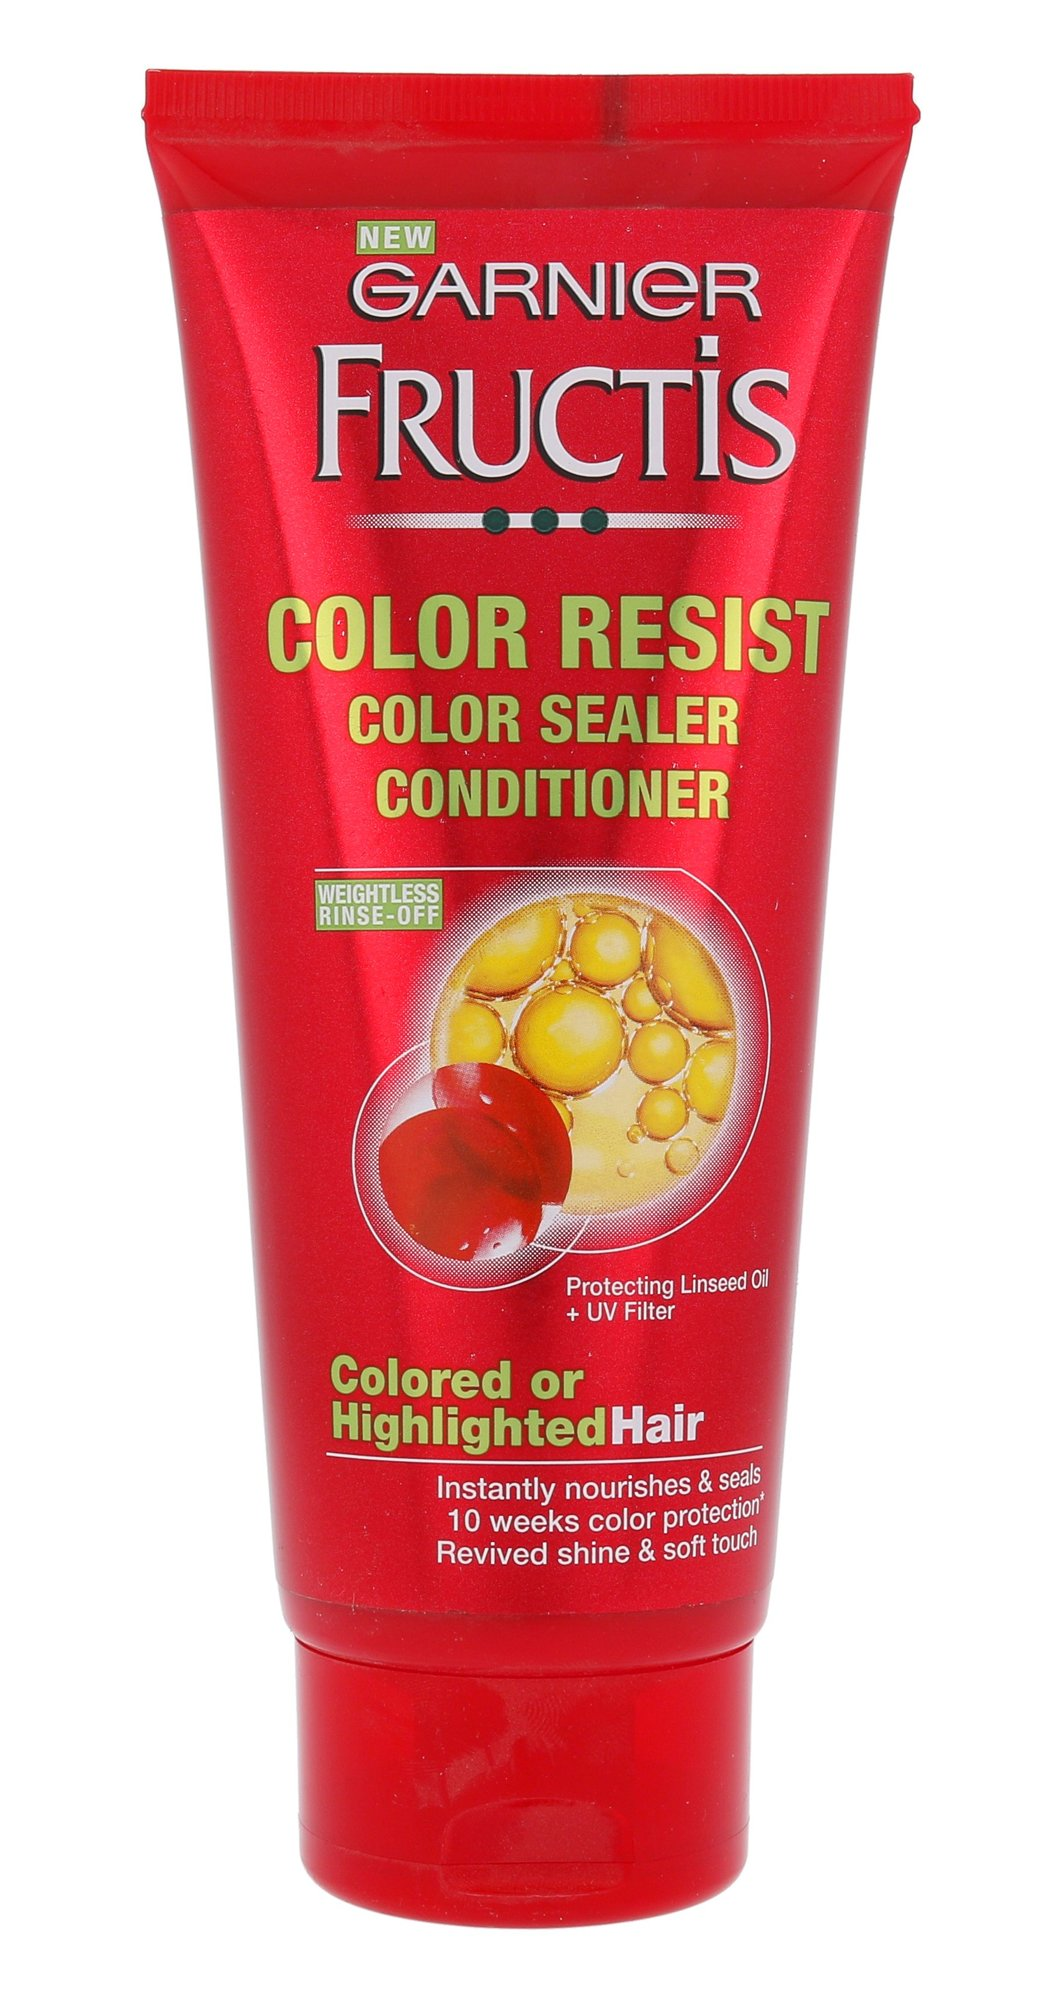 Garnier Fructis Color Resist Conditioner Cosmetic 200ml